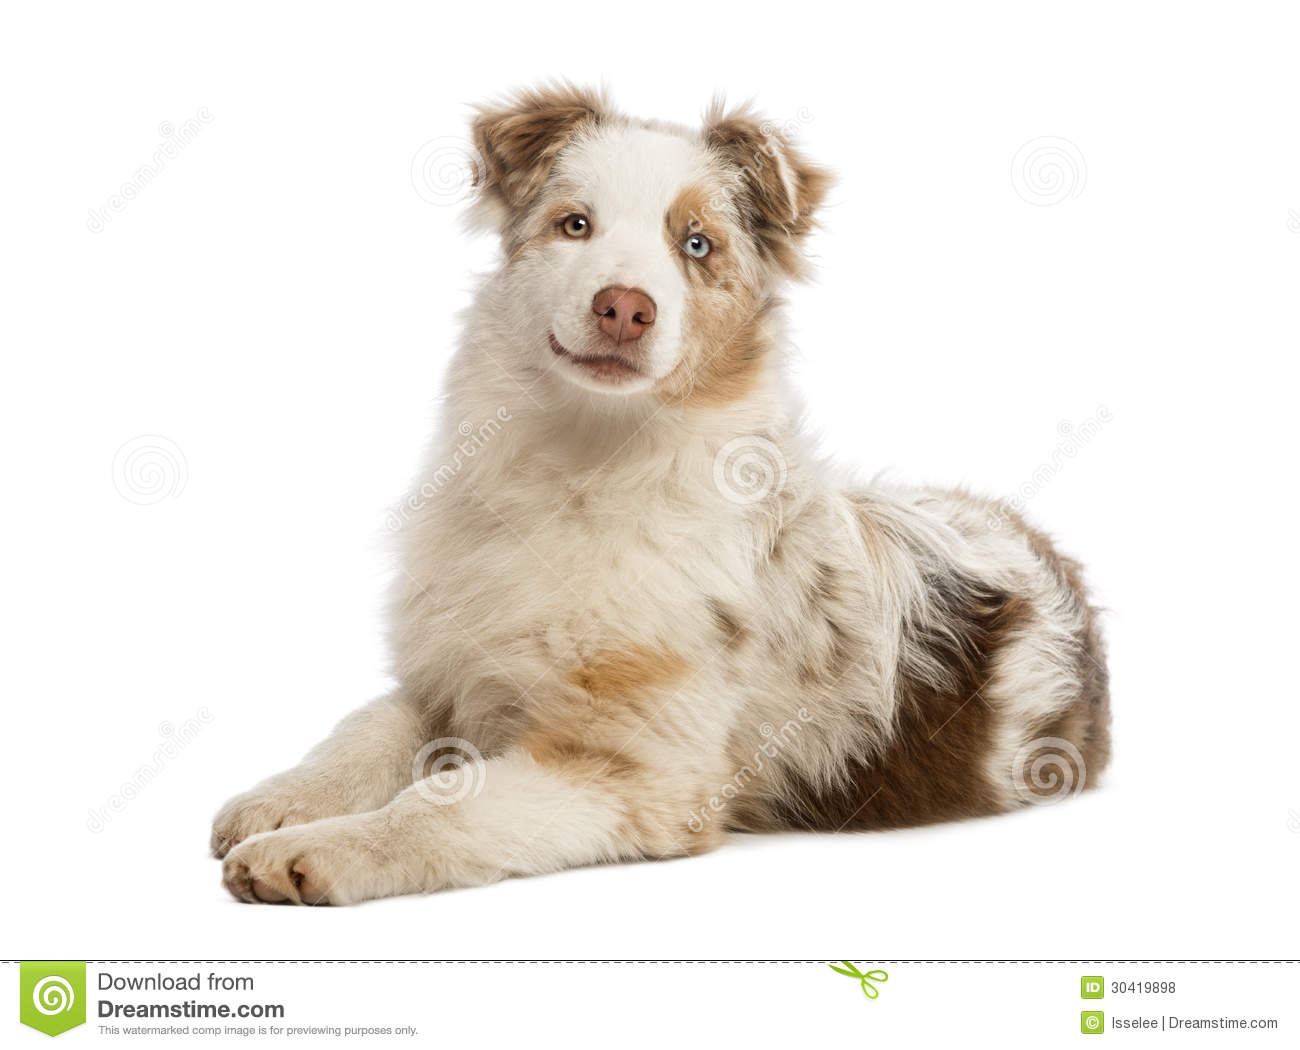 Royalty Free Stock Photos: Australian Shepherd puppy lying